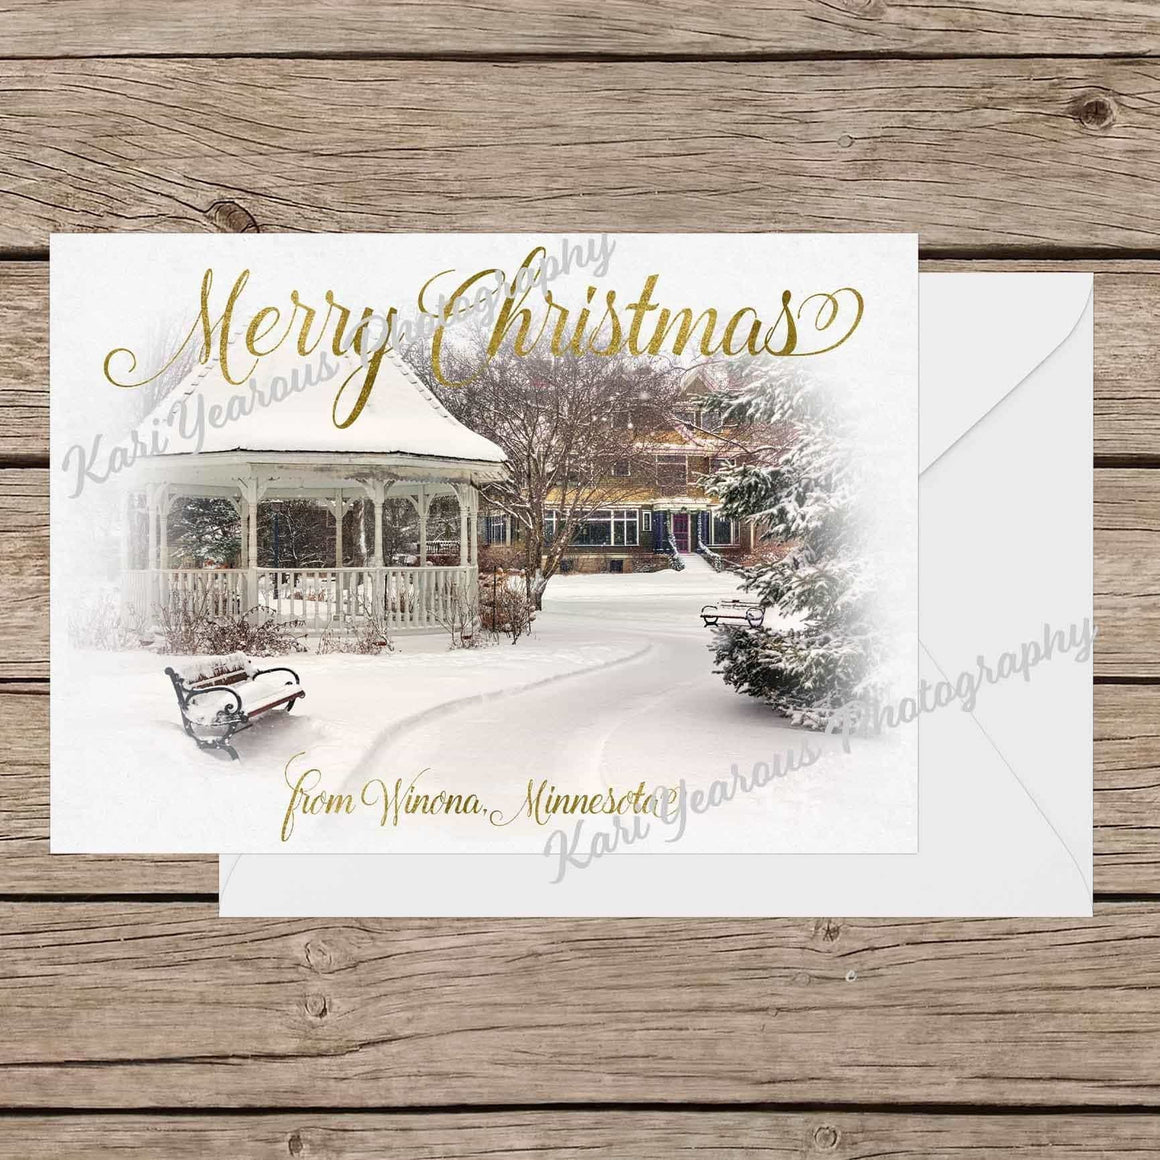 Card (Flat) Merry Christmas From Winona Minnesota, 5 pk - Kari Yearous Photography KetoLaughs